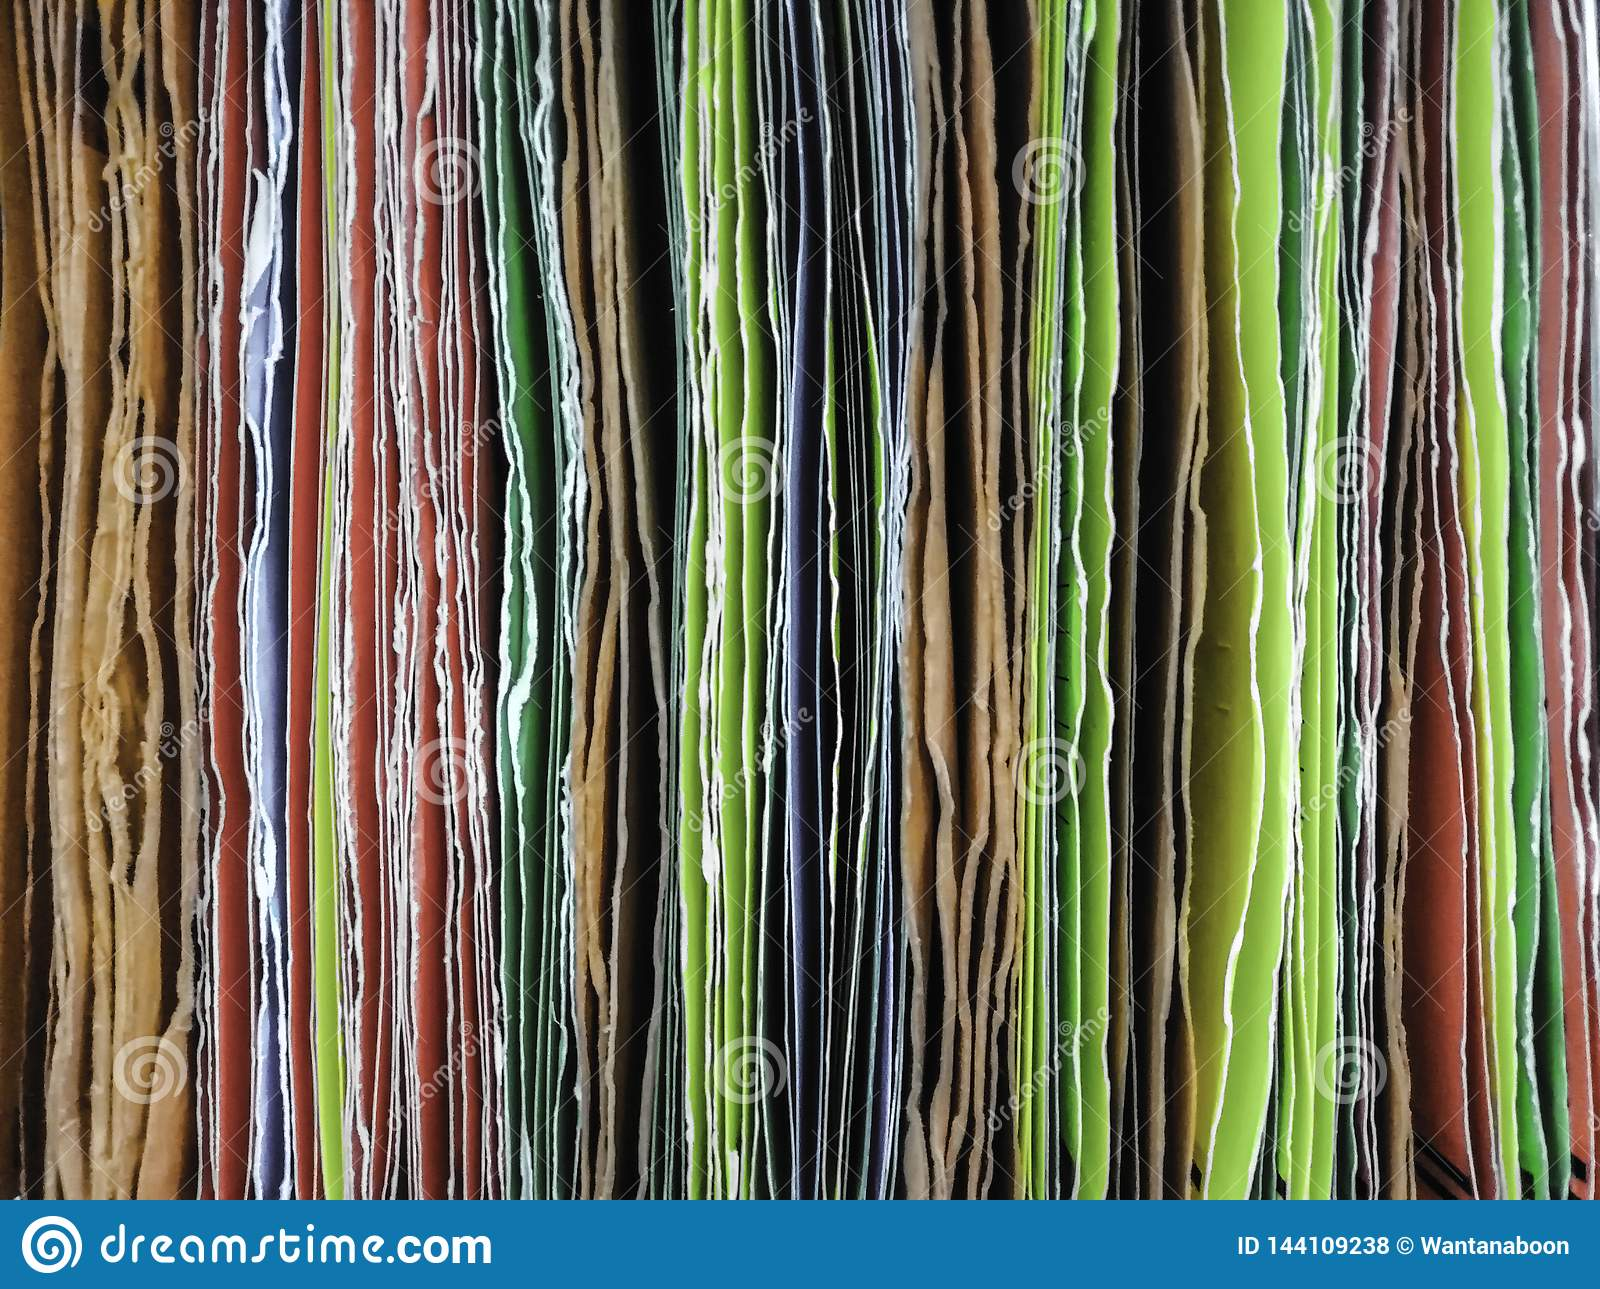 Colorful of paper file hanging for inserting documents in the office